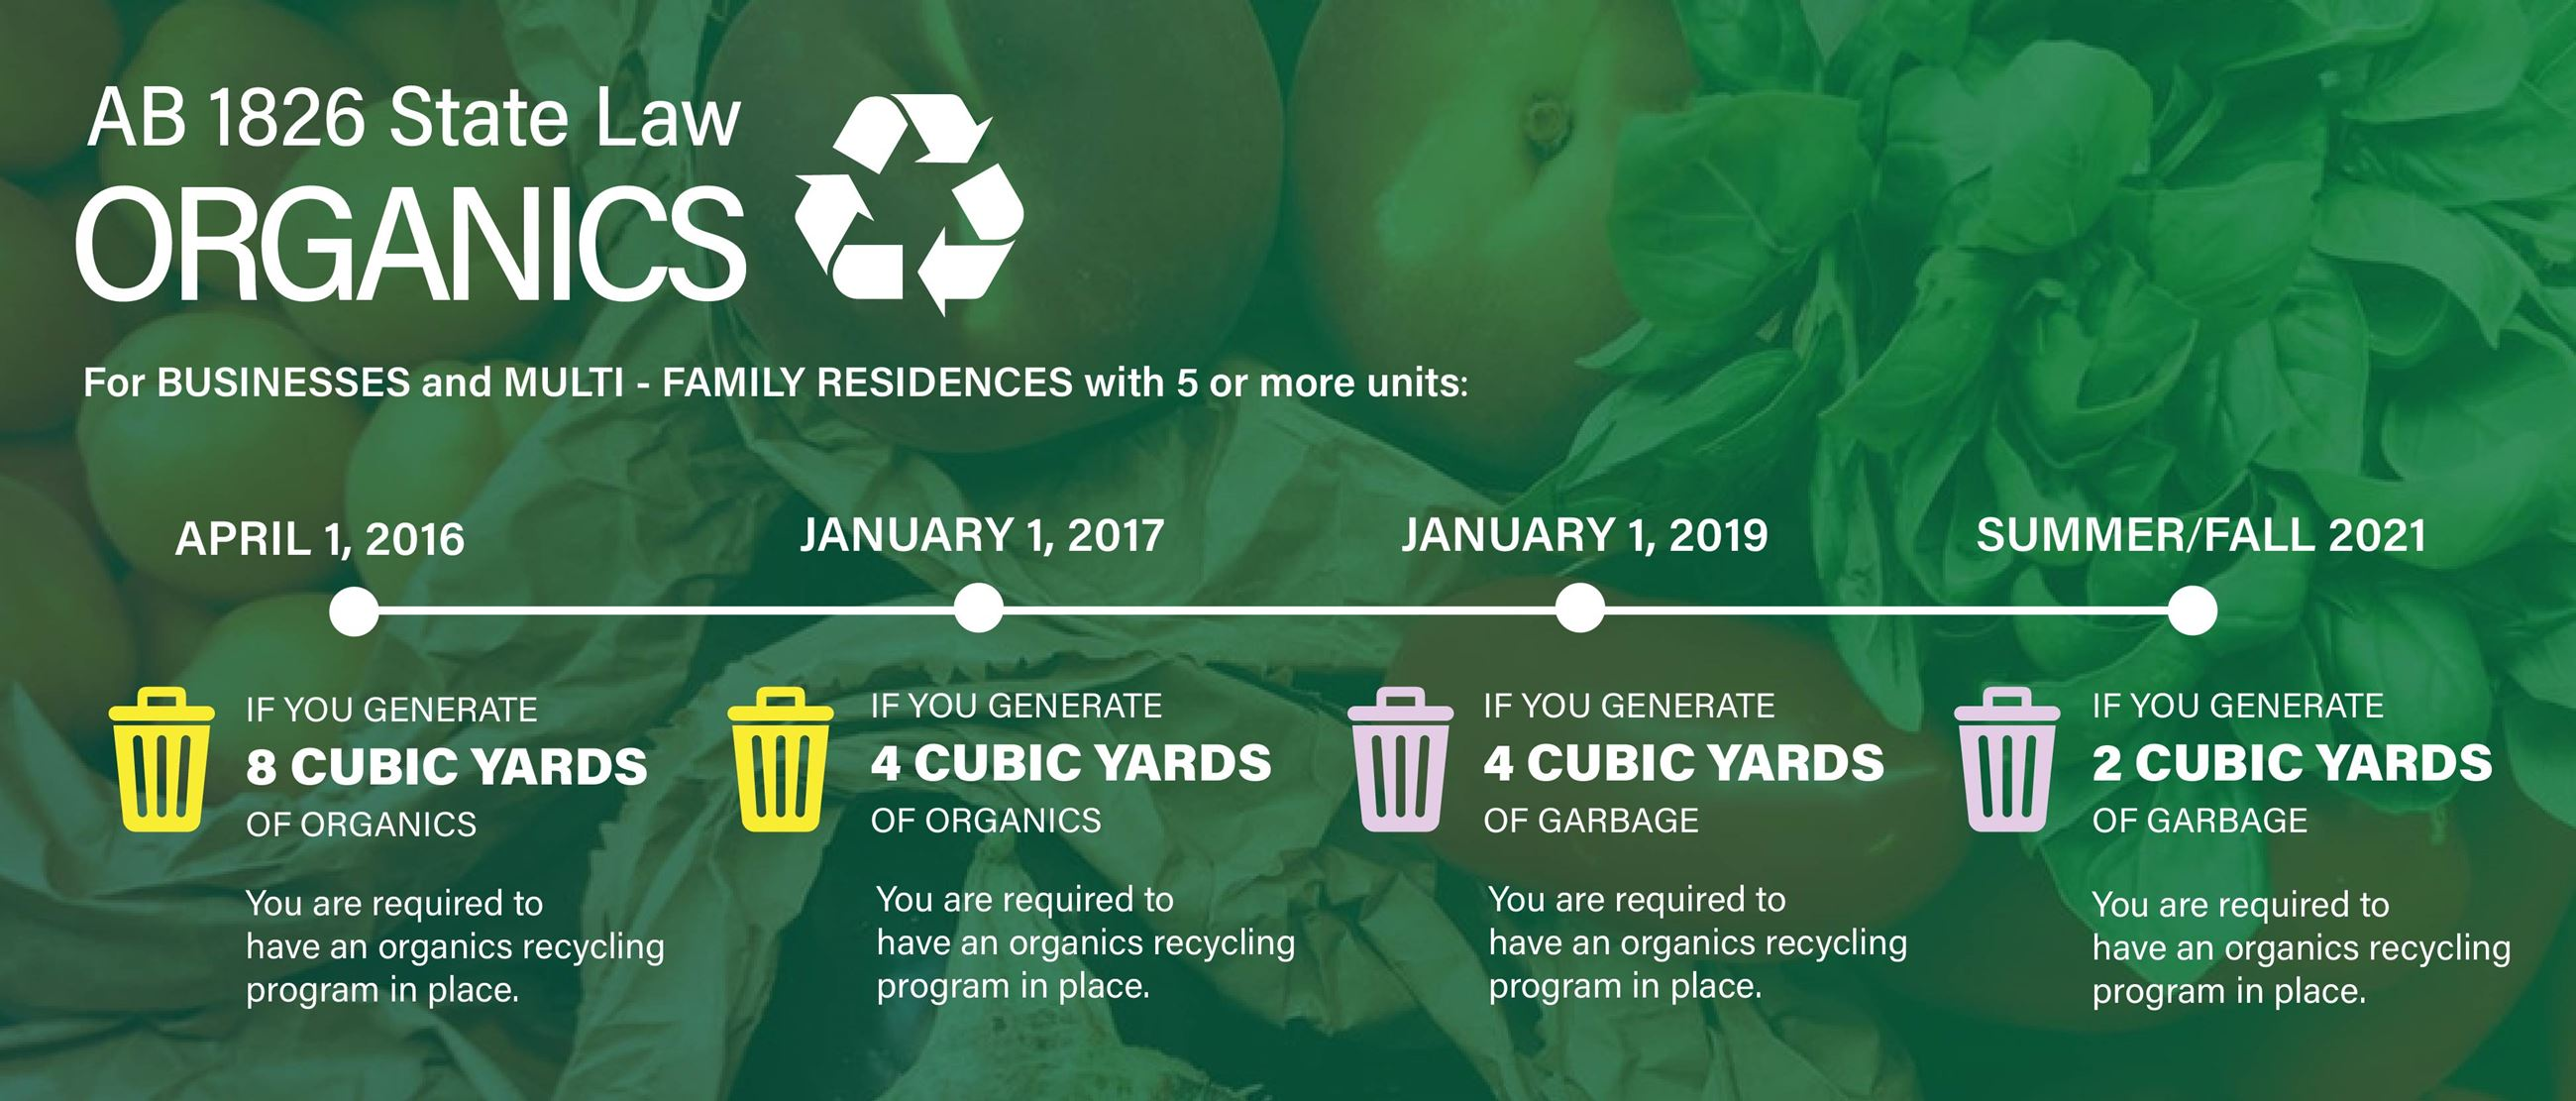 Organics Recycling Requirements